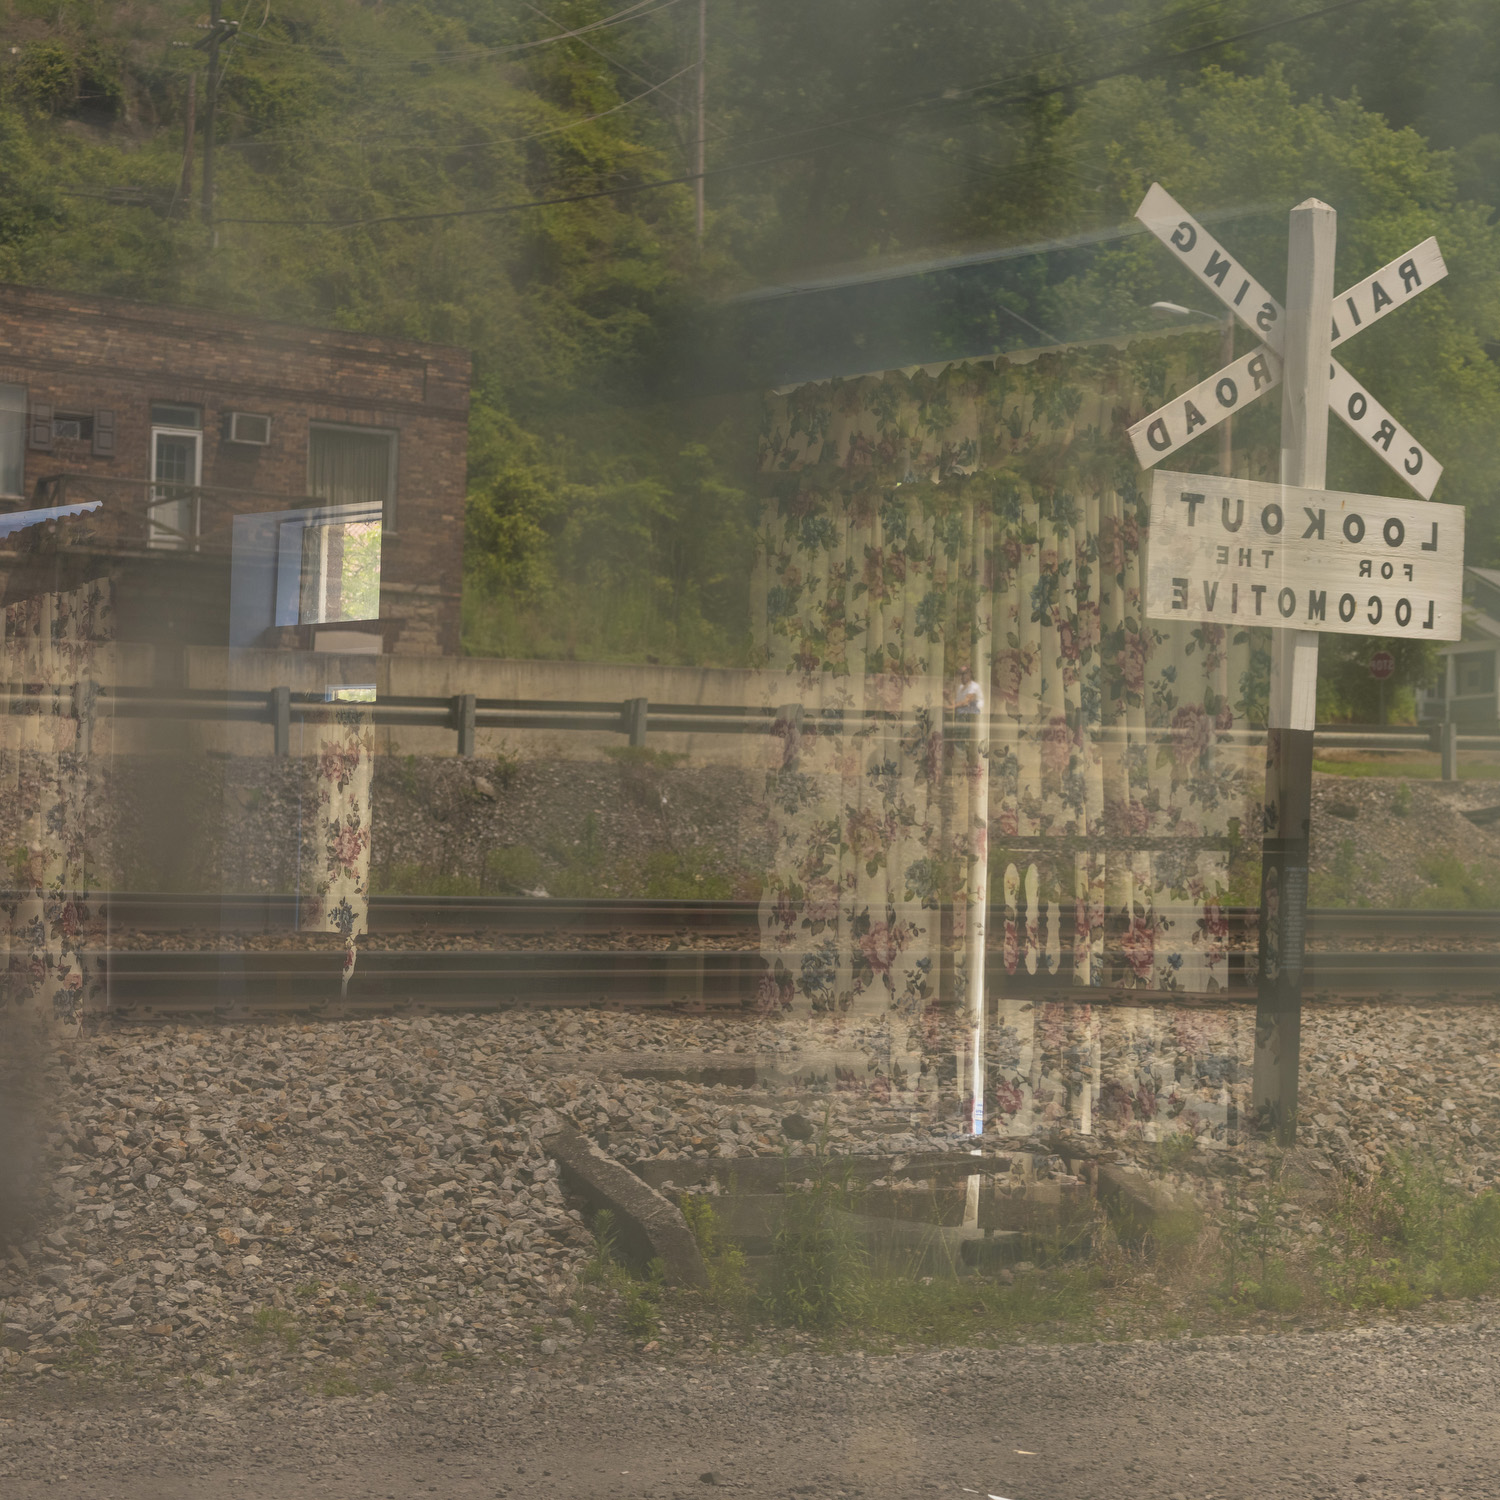 A double exposure of a curtain on a railroad crossing scene